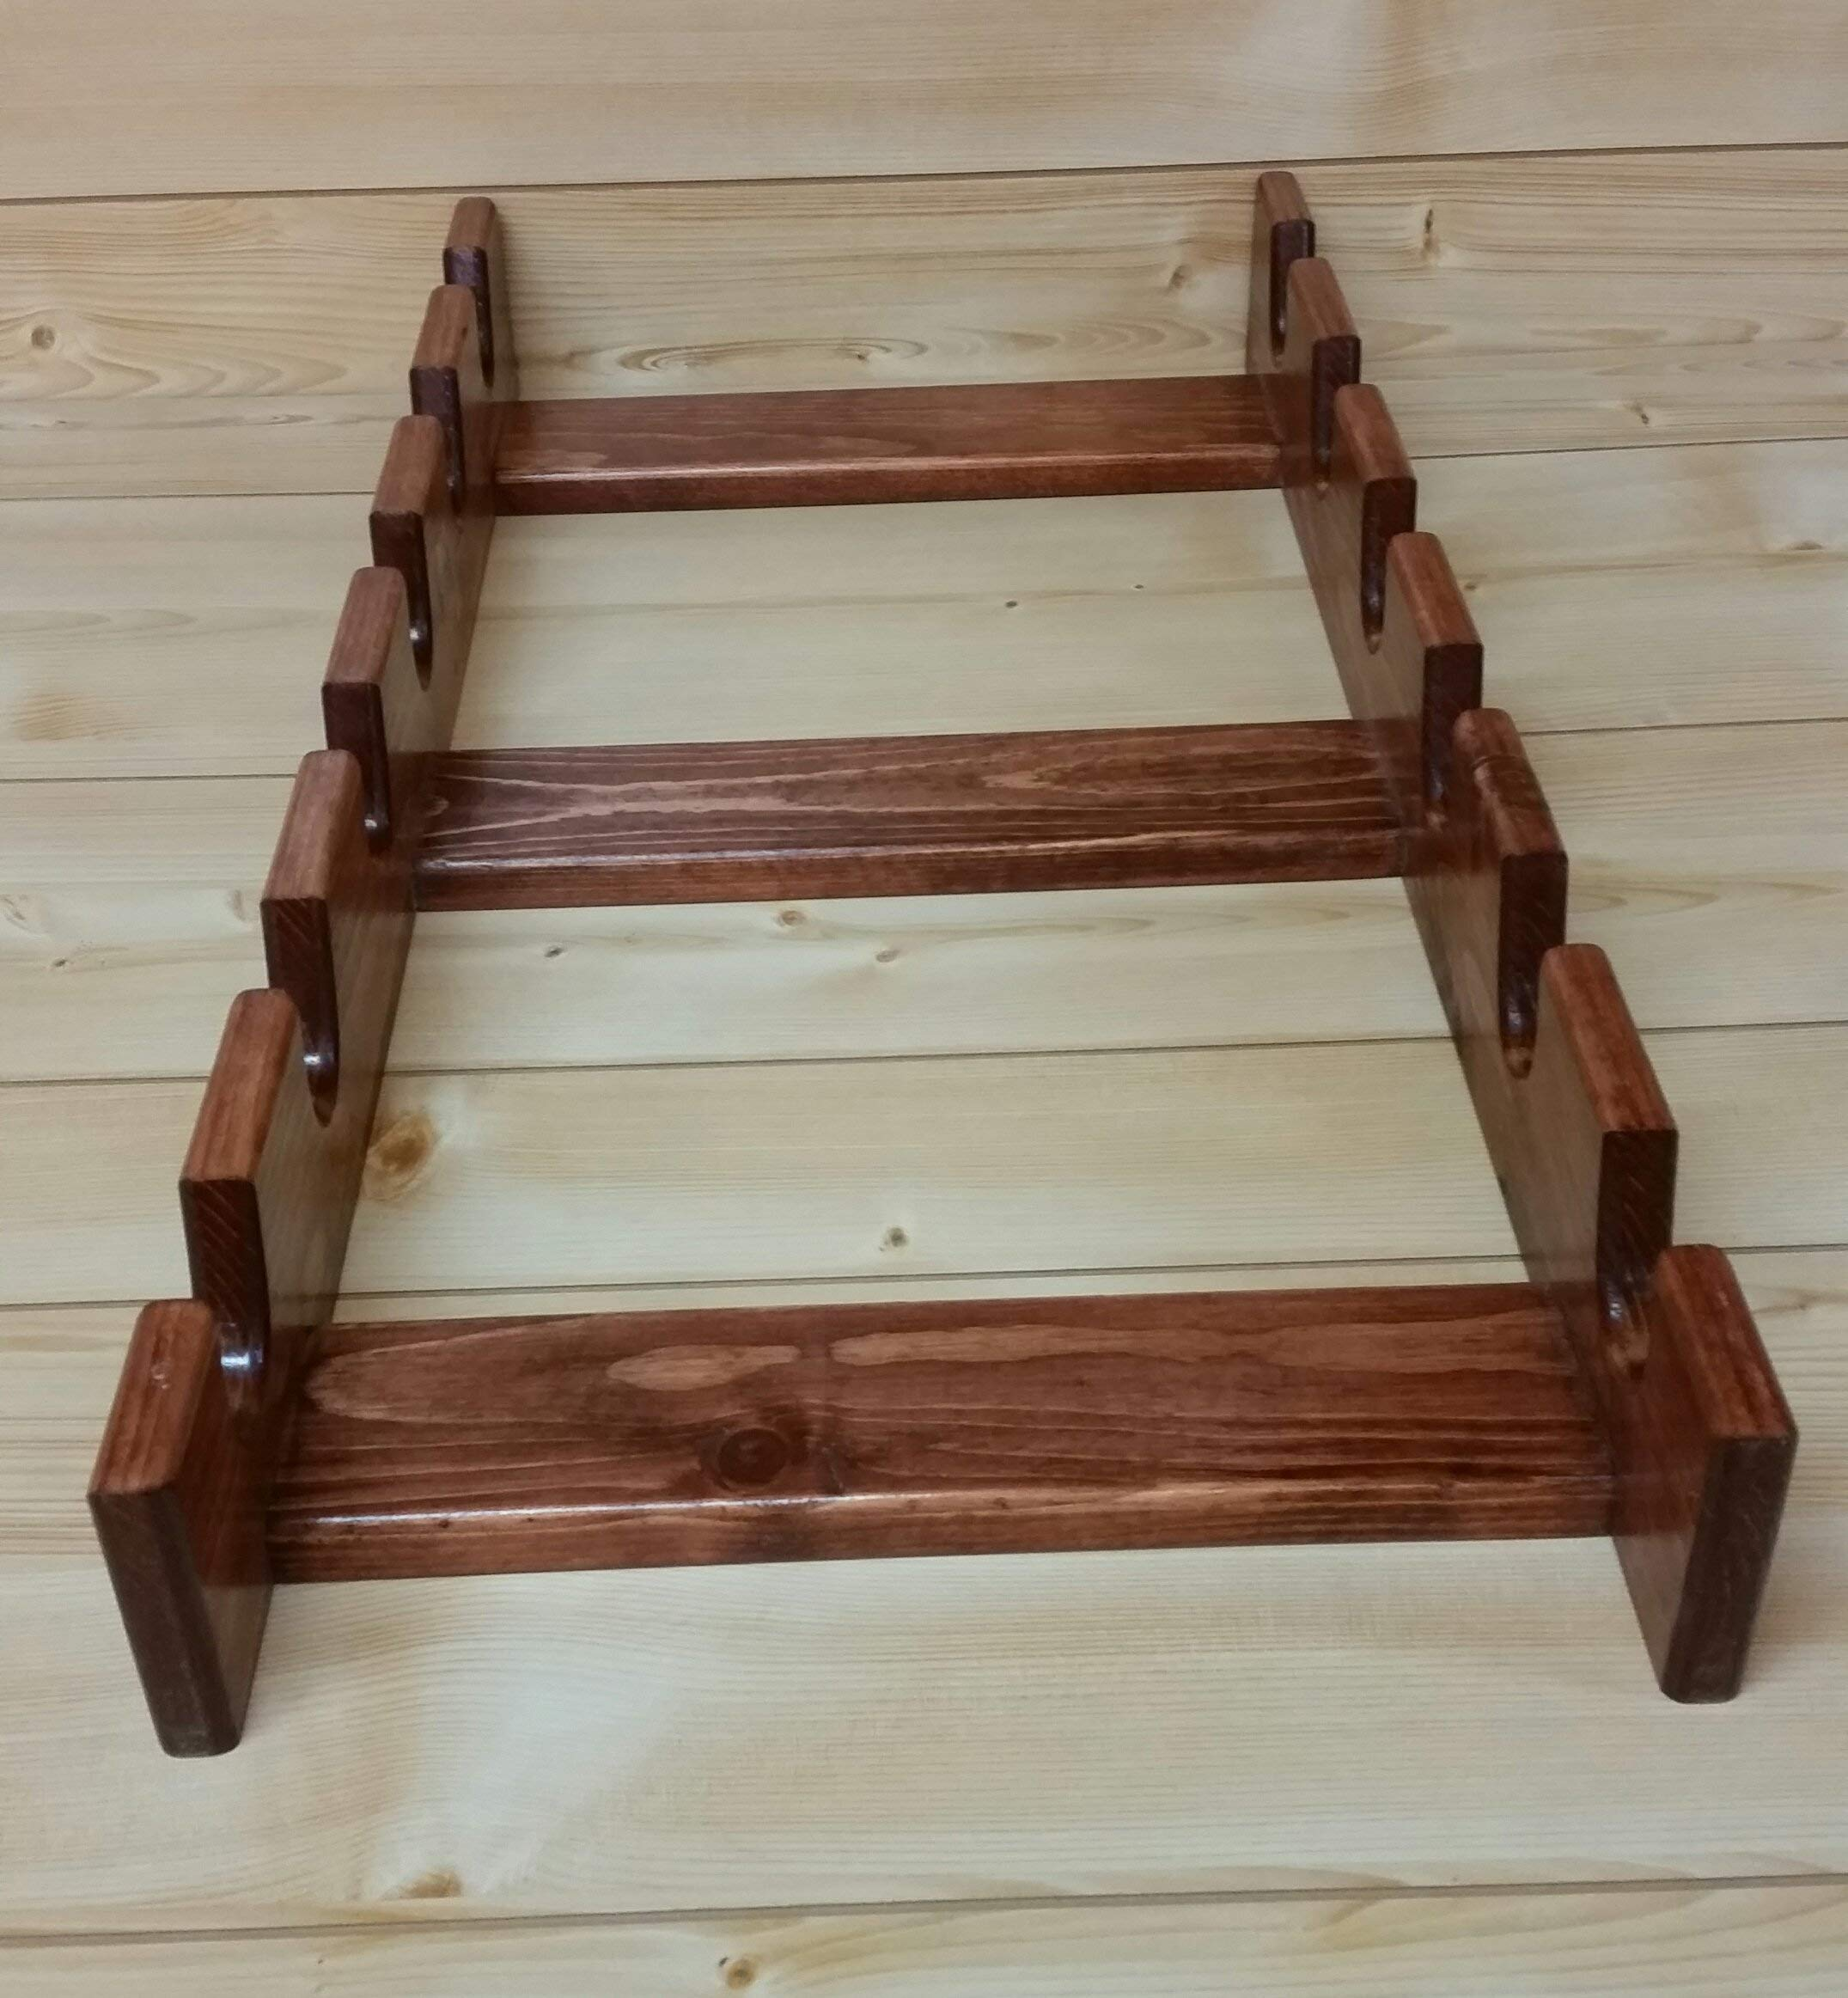 Rolling Pin Rack with Six Slots - Multiple Rolling Pin Rack - Rolling Pin Holder - Rolling Pin Storage - Rolling Pin Rack for 6 by Rusty Nail Custom Woodworking (Image #8)